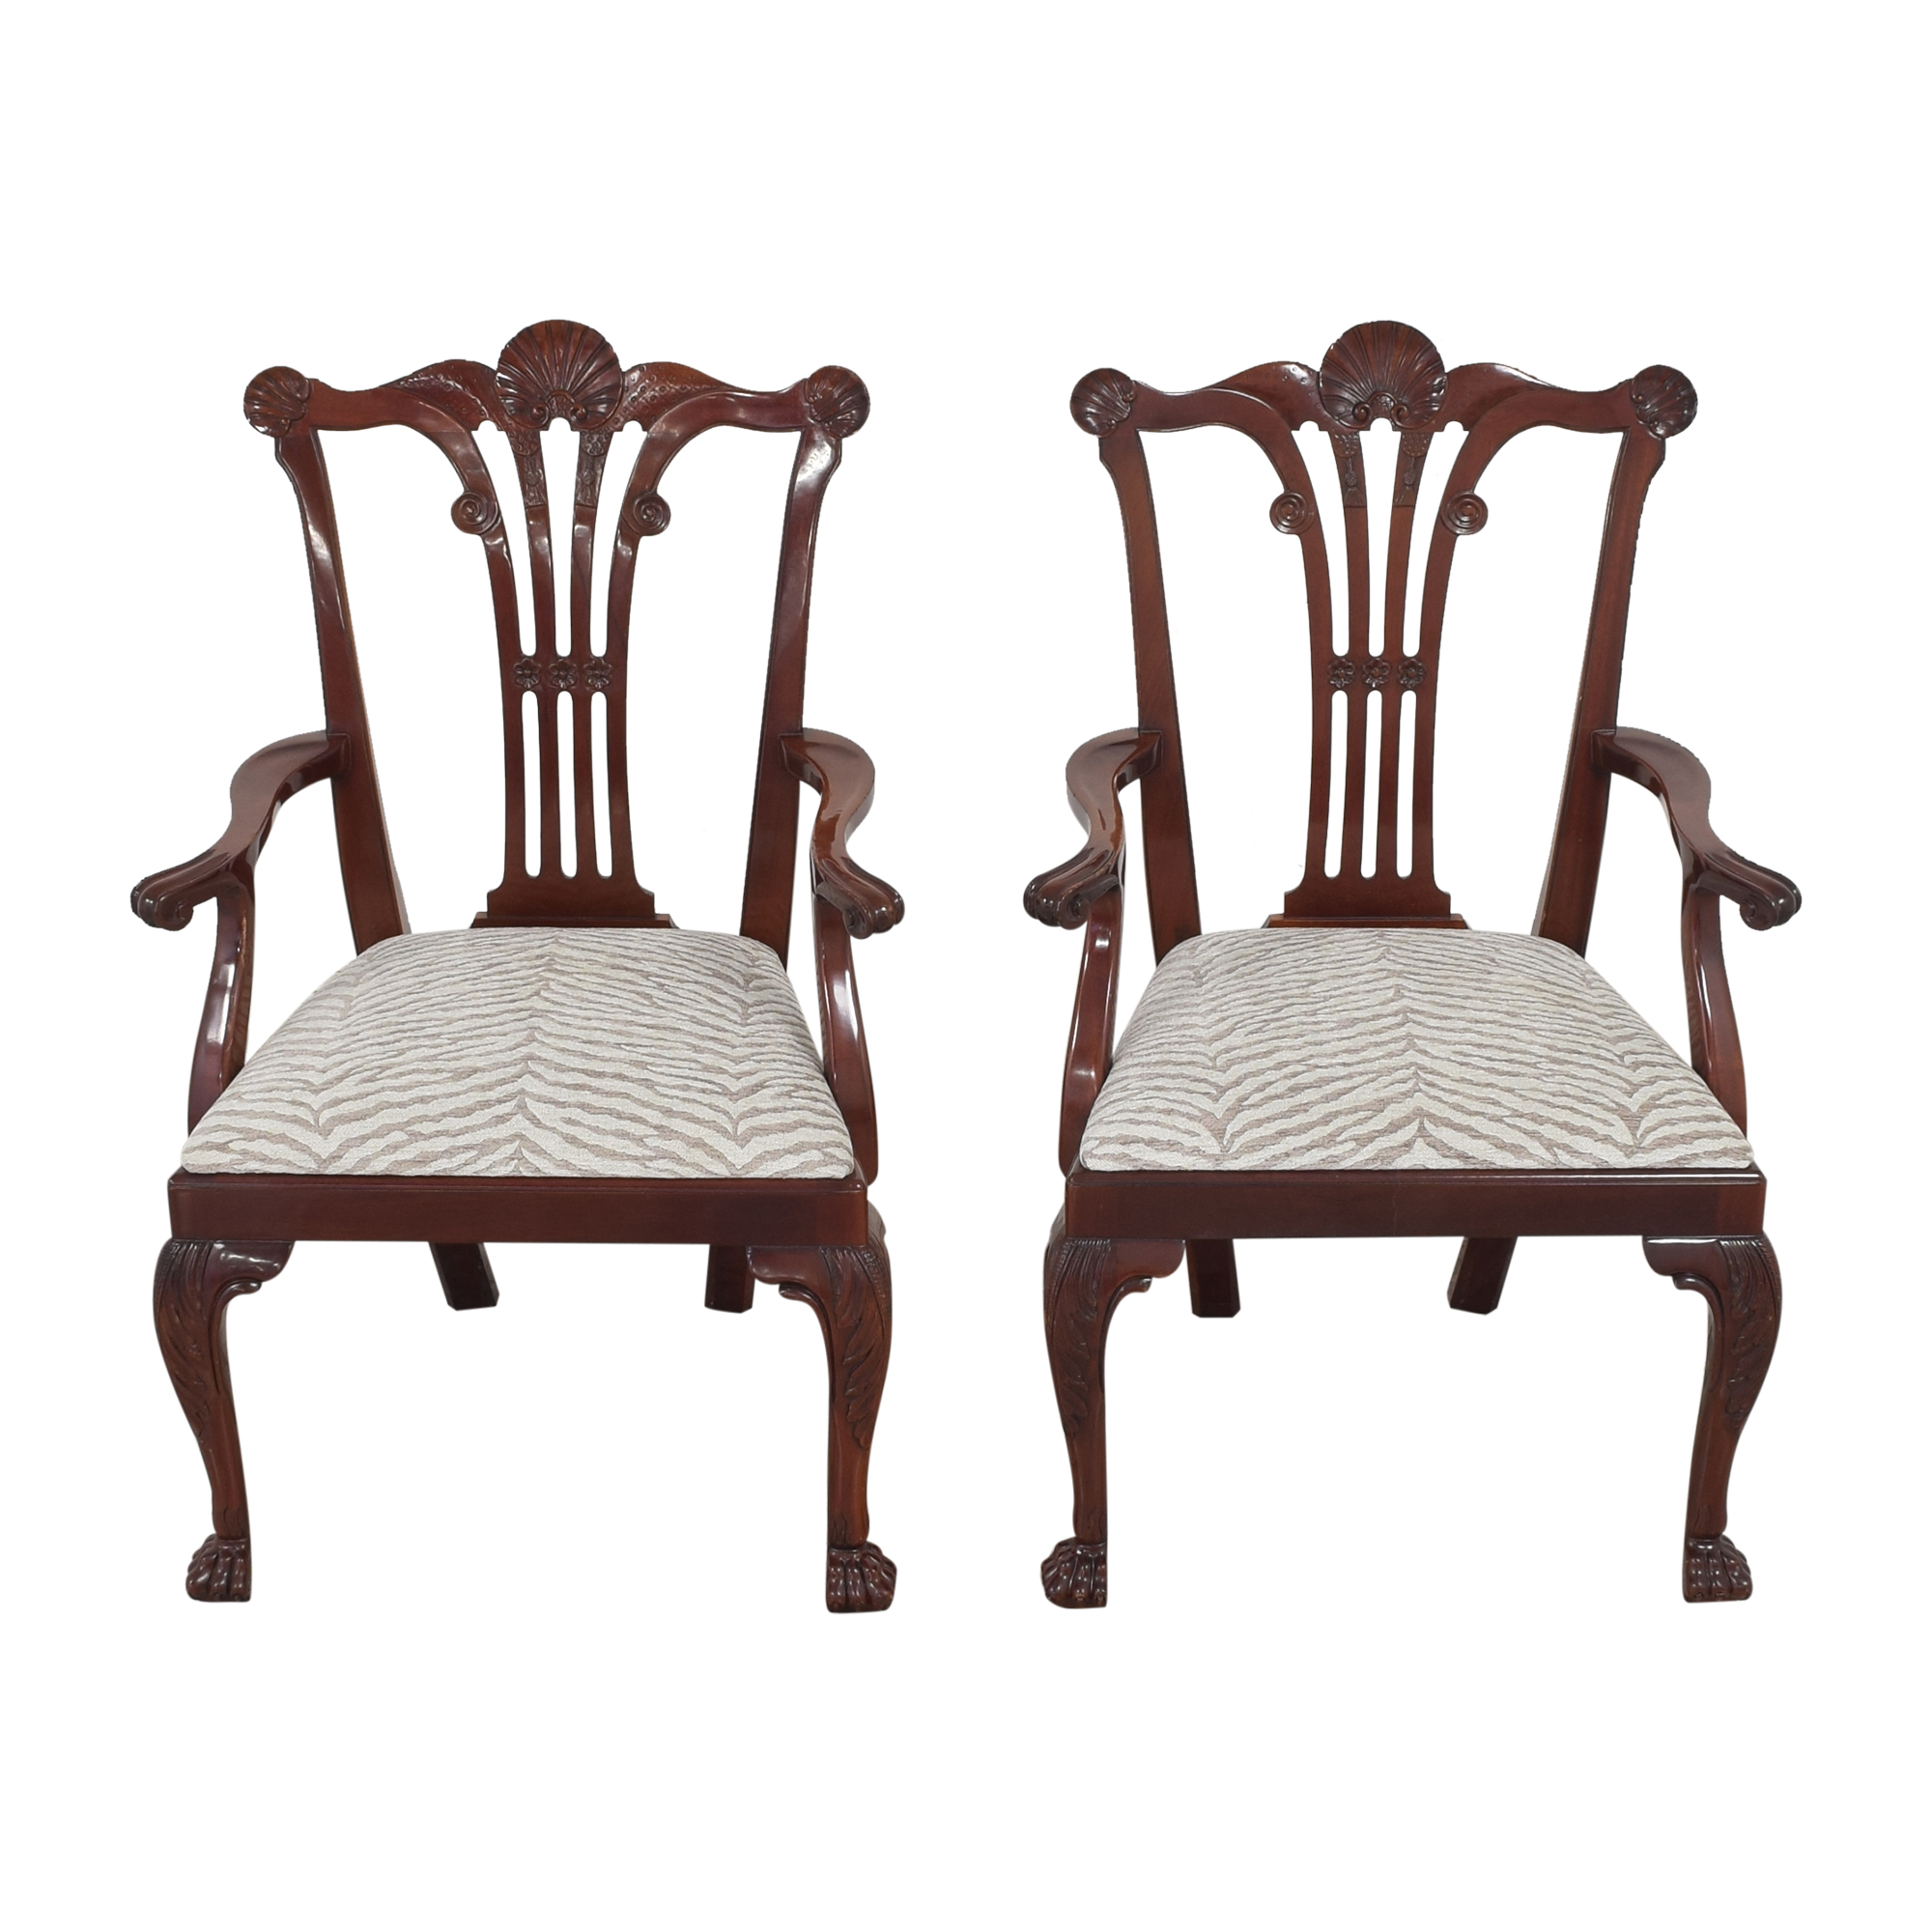 buy Kindel Chippendale-Style Dining Arm Chairs Kindel